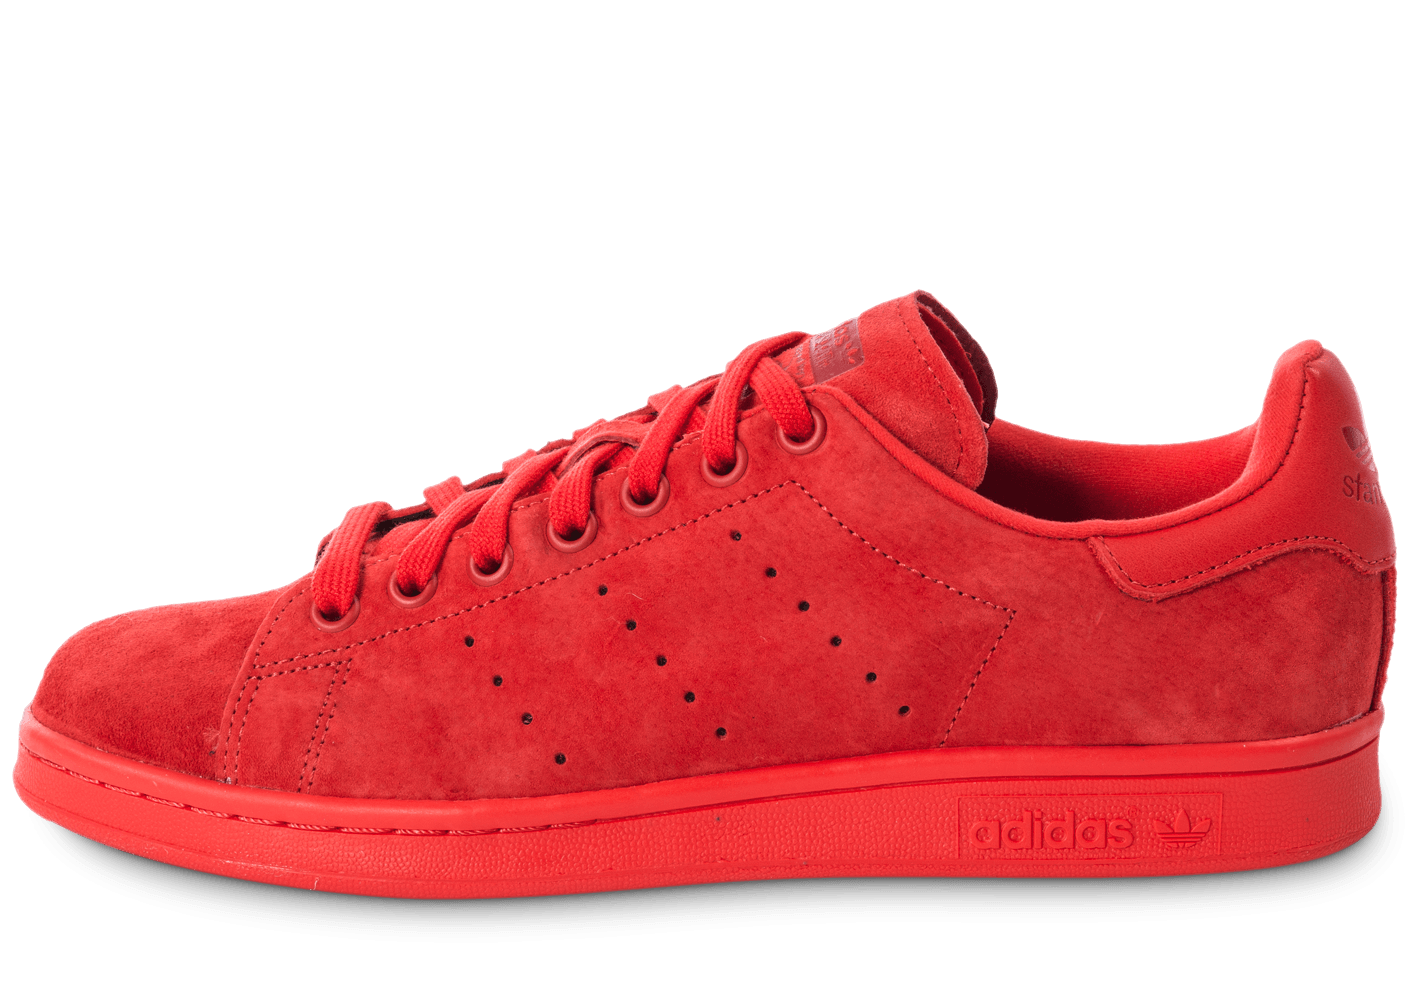 adidas stan smith suede monochrome rouge chaussures homme chausport. Black Bedroom Furniture Sets. Home Design Ideas